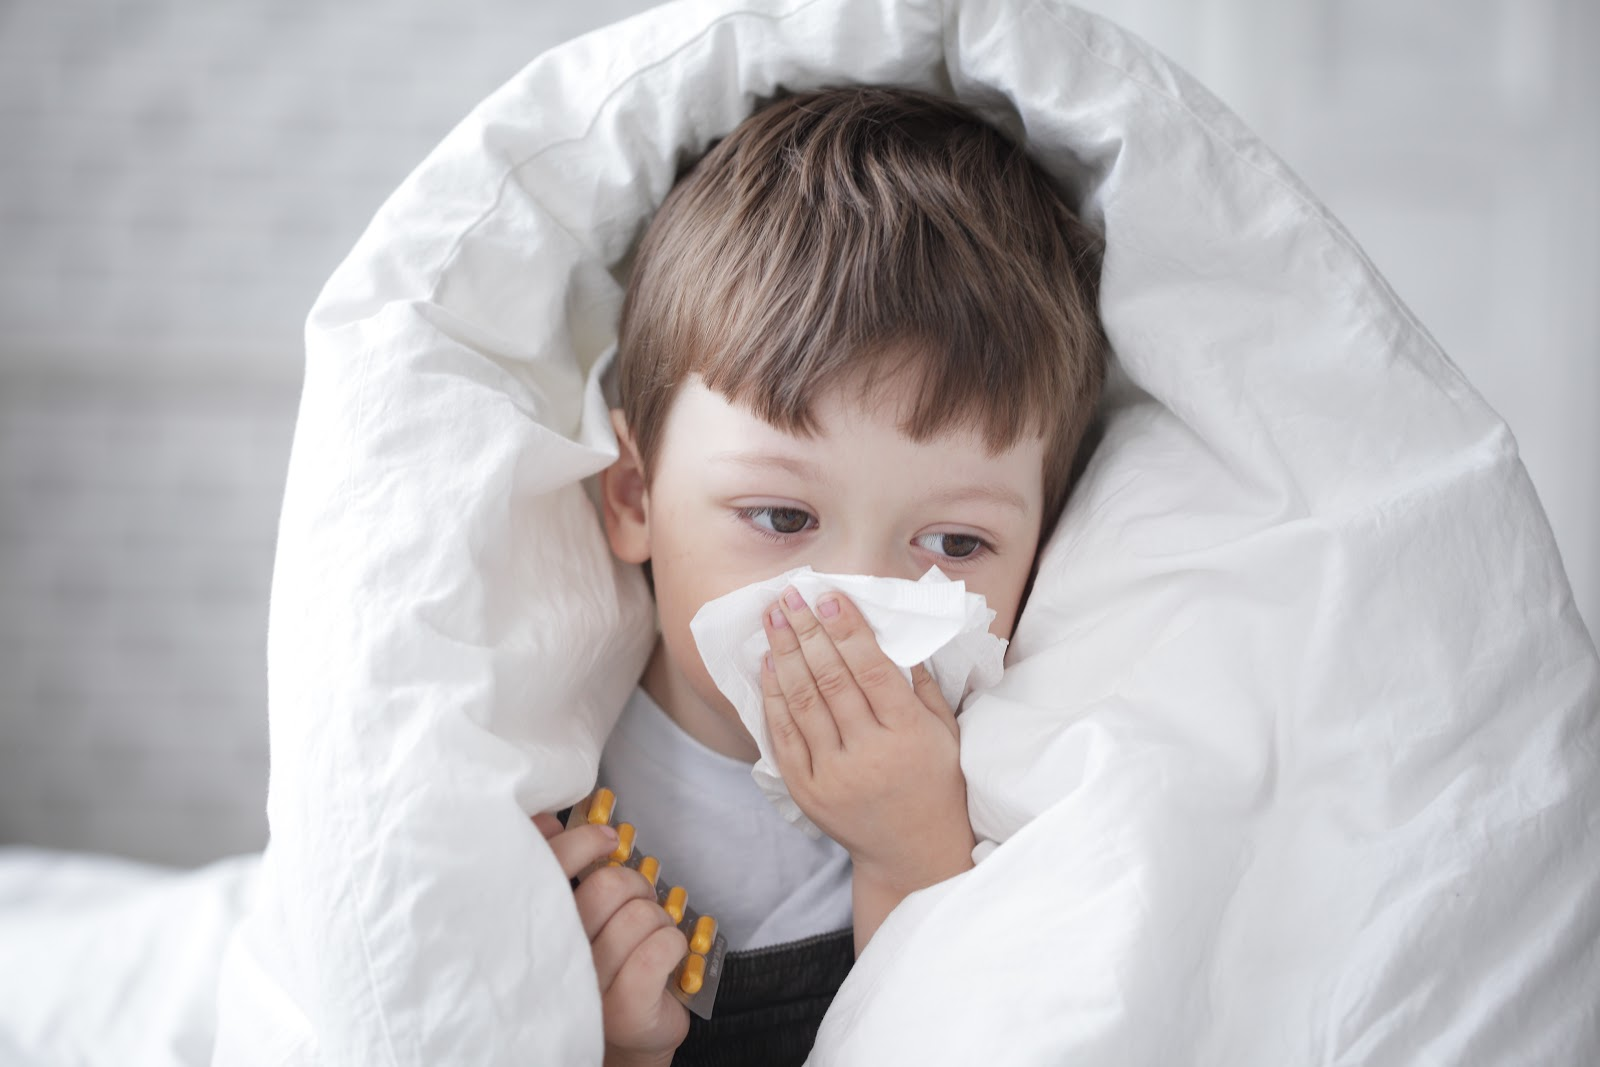 Young boy wipes his nose with tissue under white bed sheets.